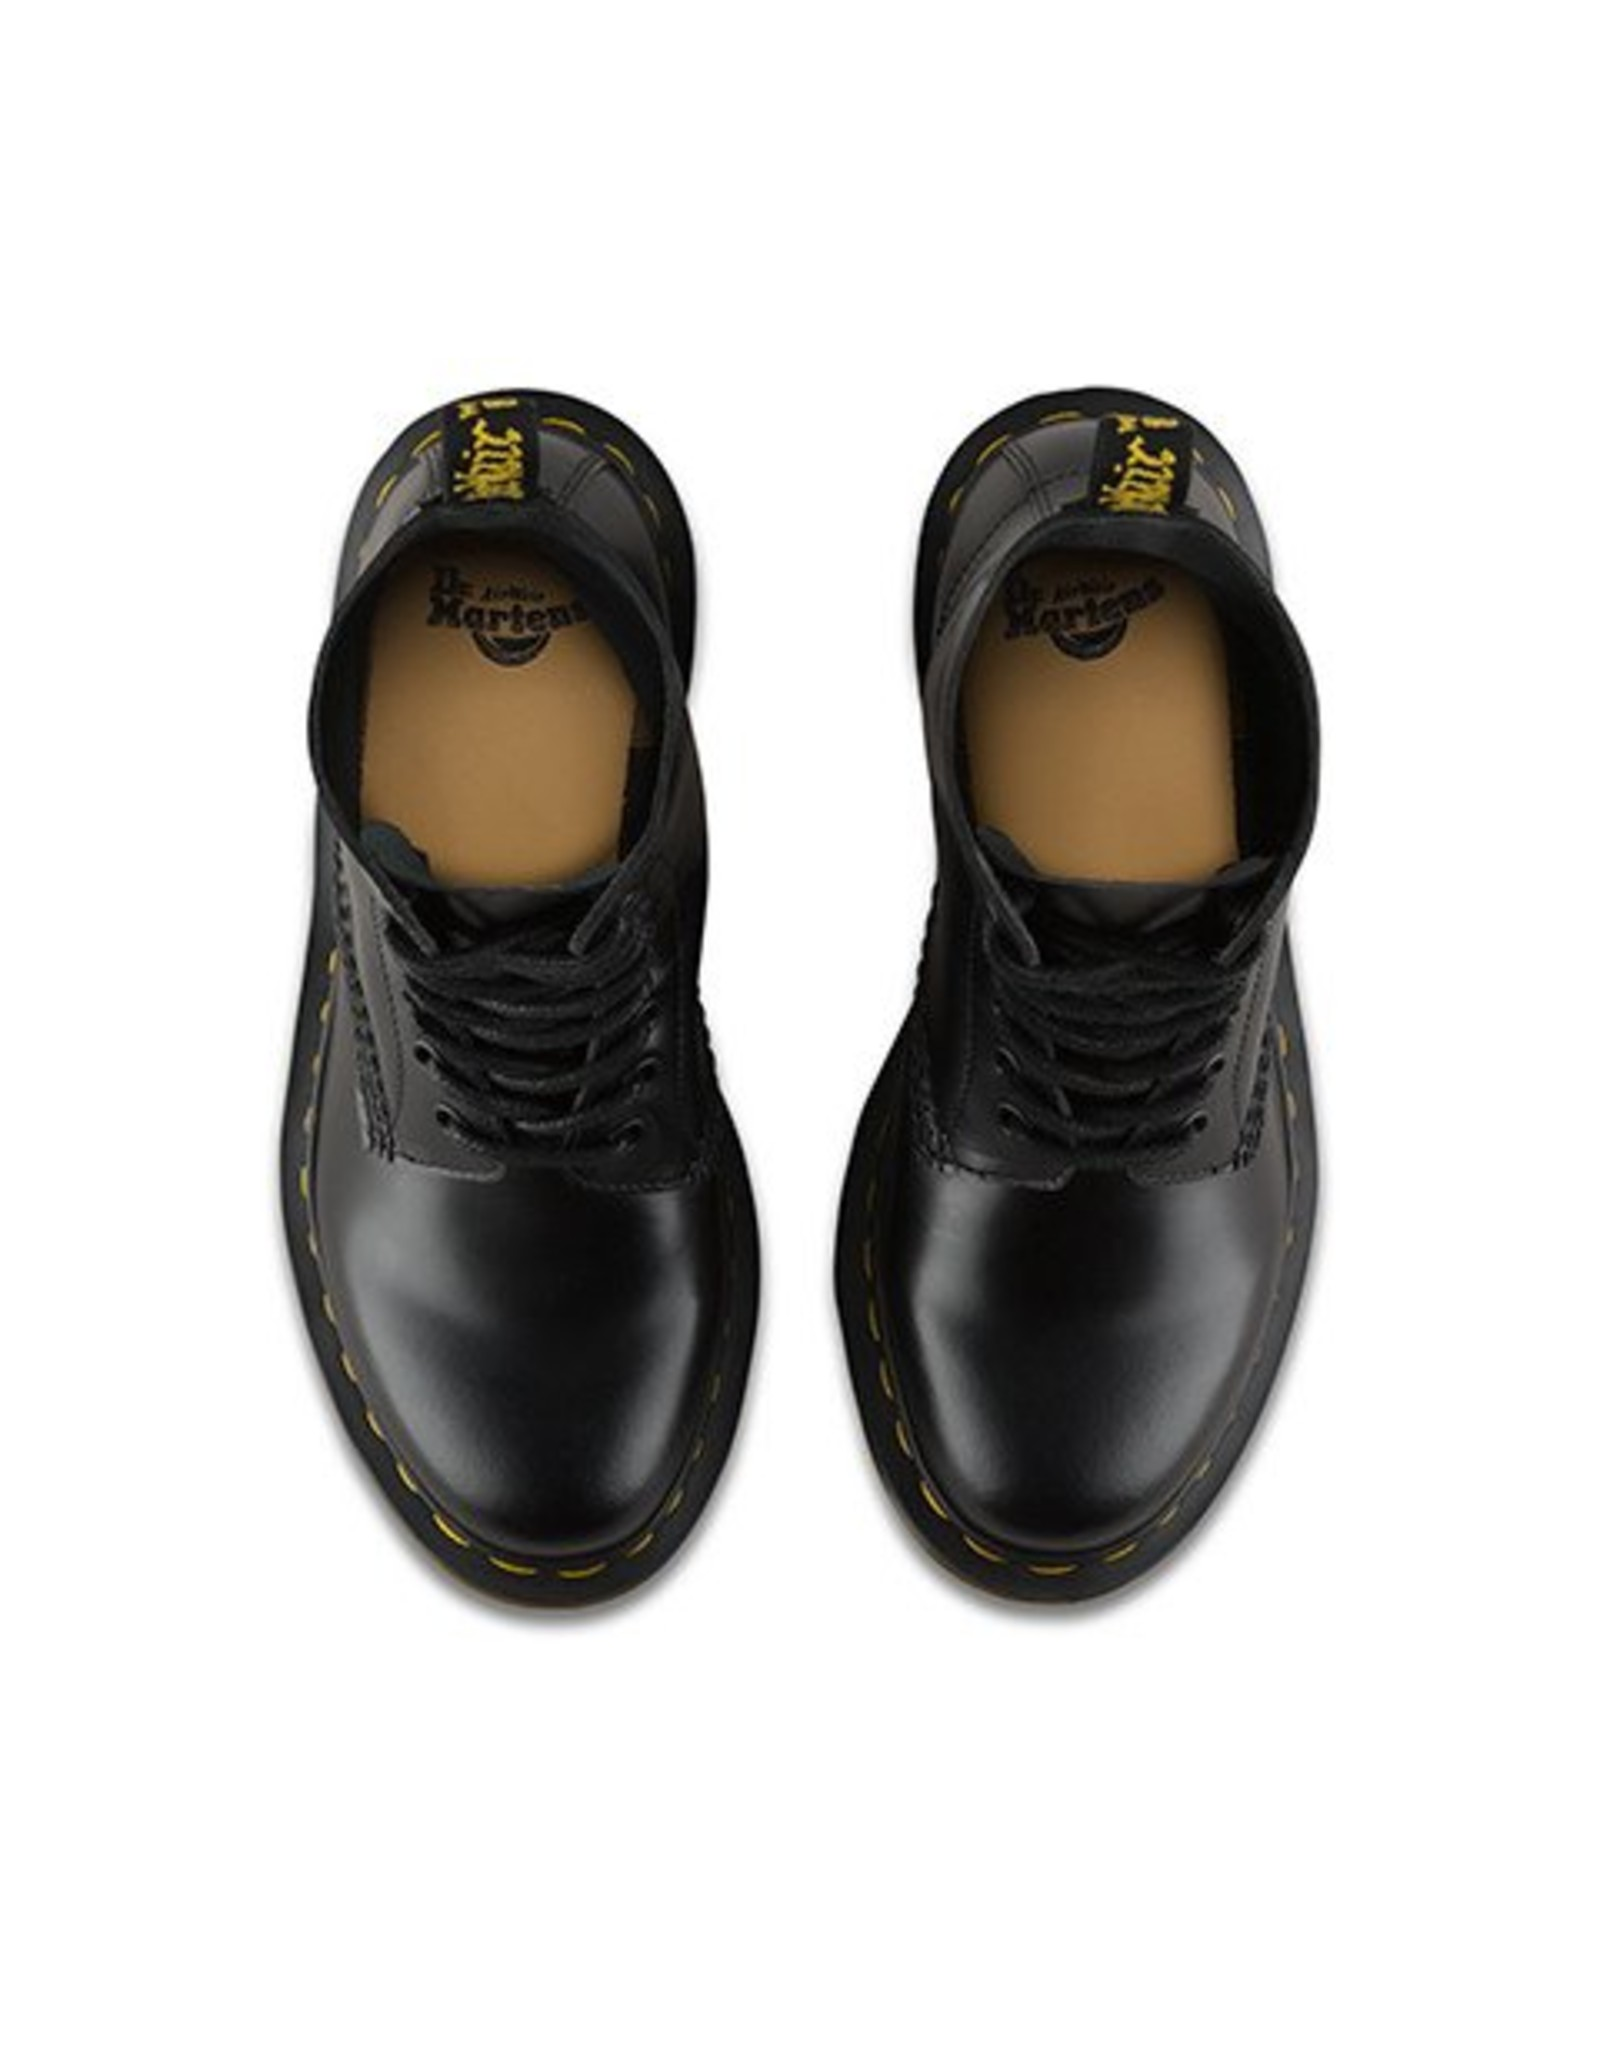 DR. MARTENS CLEMENCY BLACK SMOOTH 835B-R14638003